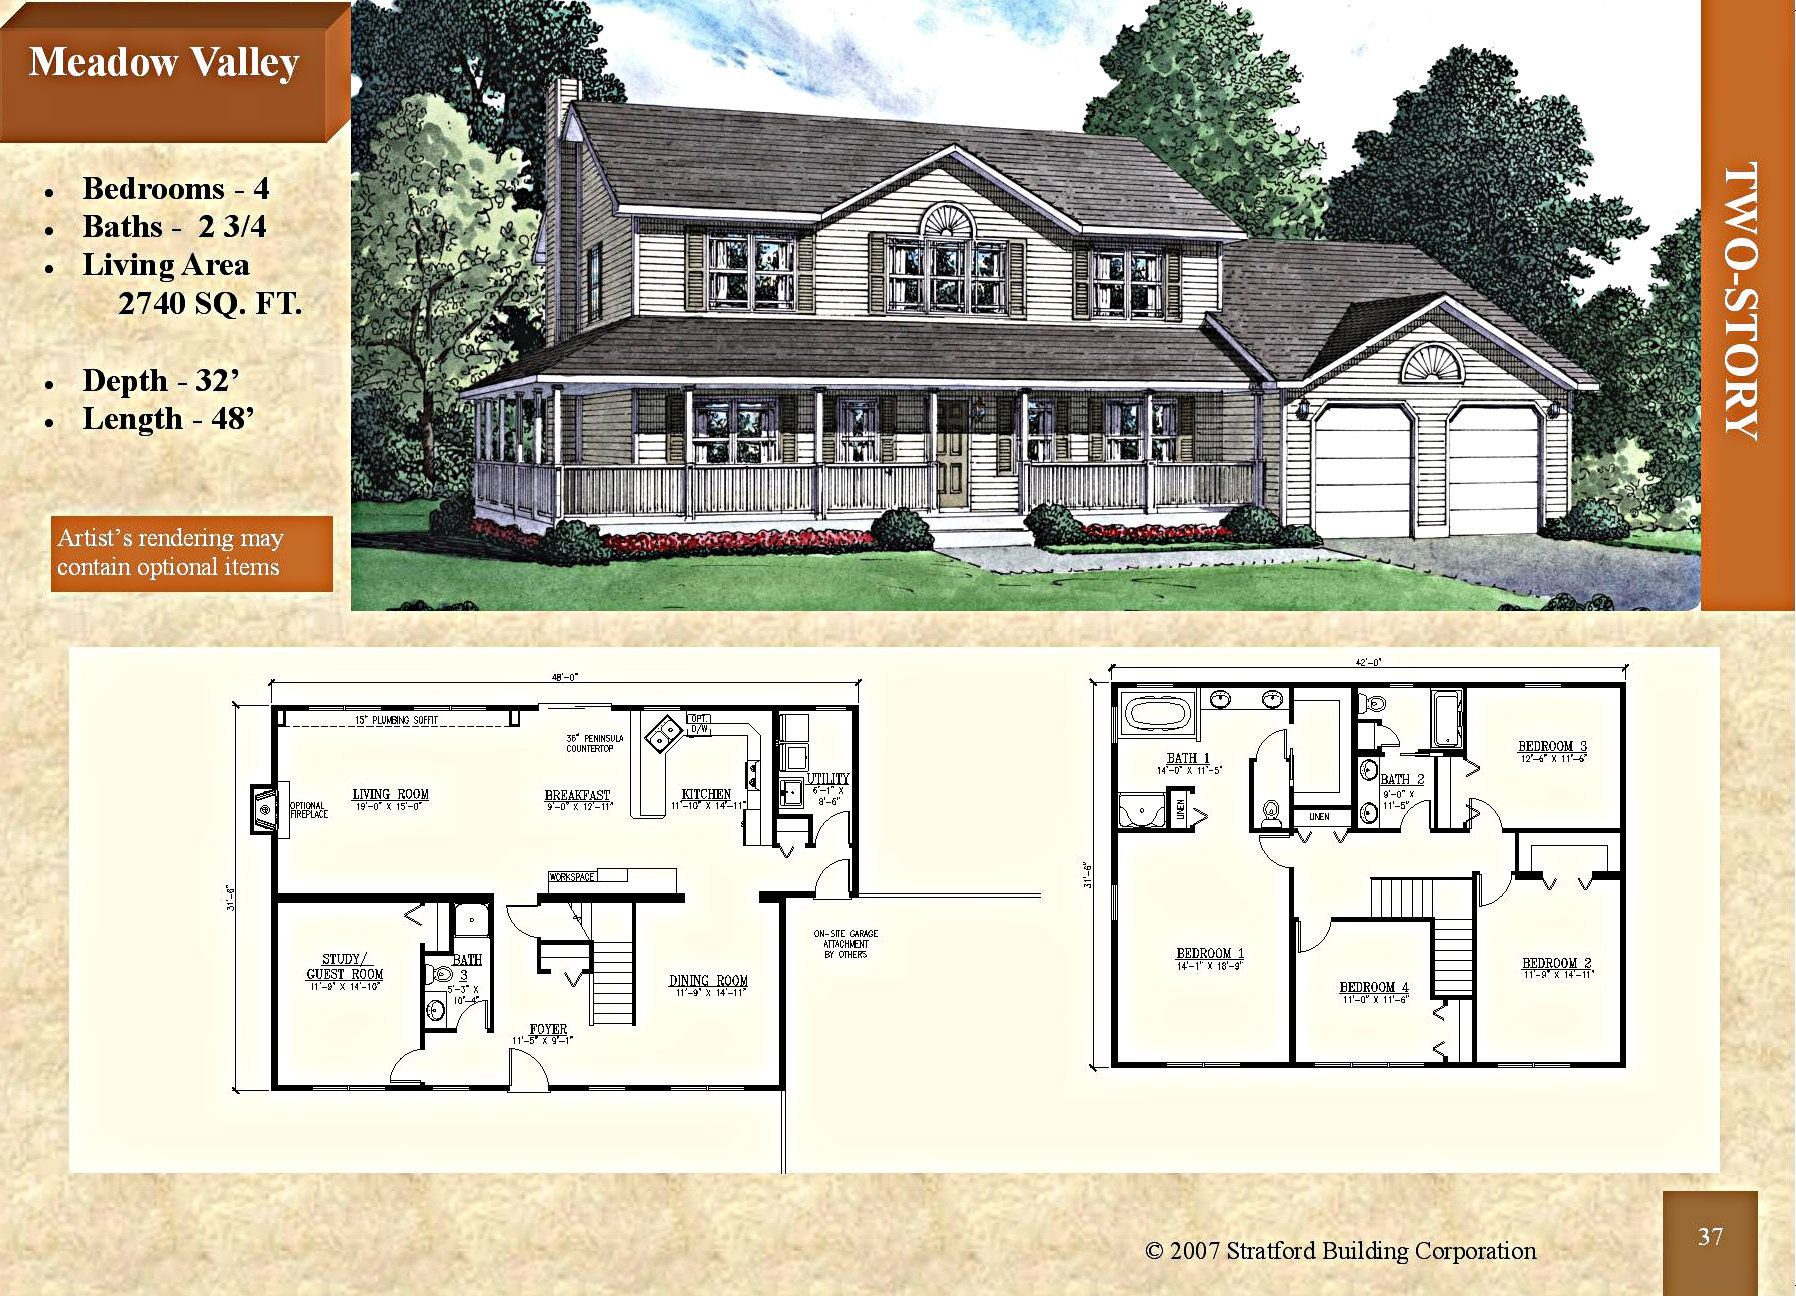 Modular 2 Story Floor Plan Meadow Valley 2740 Sq Ft Stratford Home Center Four Module Configuration Pe Stratford Homes Floor Plans Modular Floor Plans